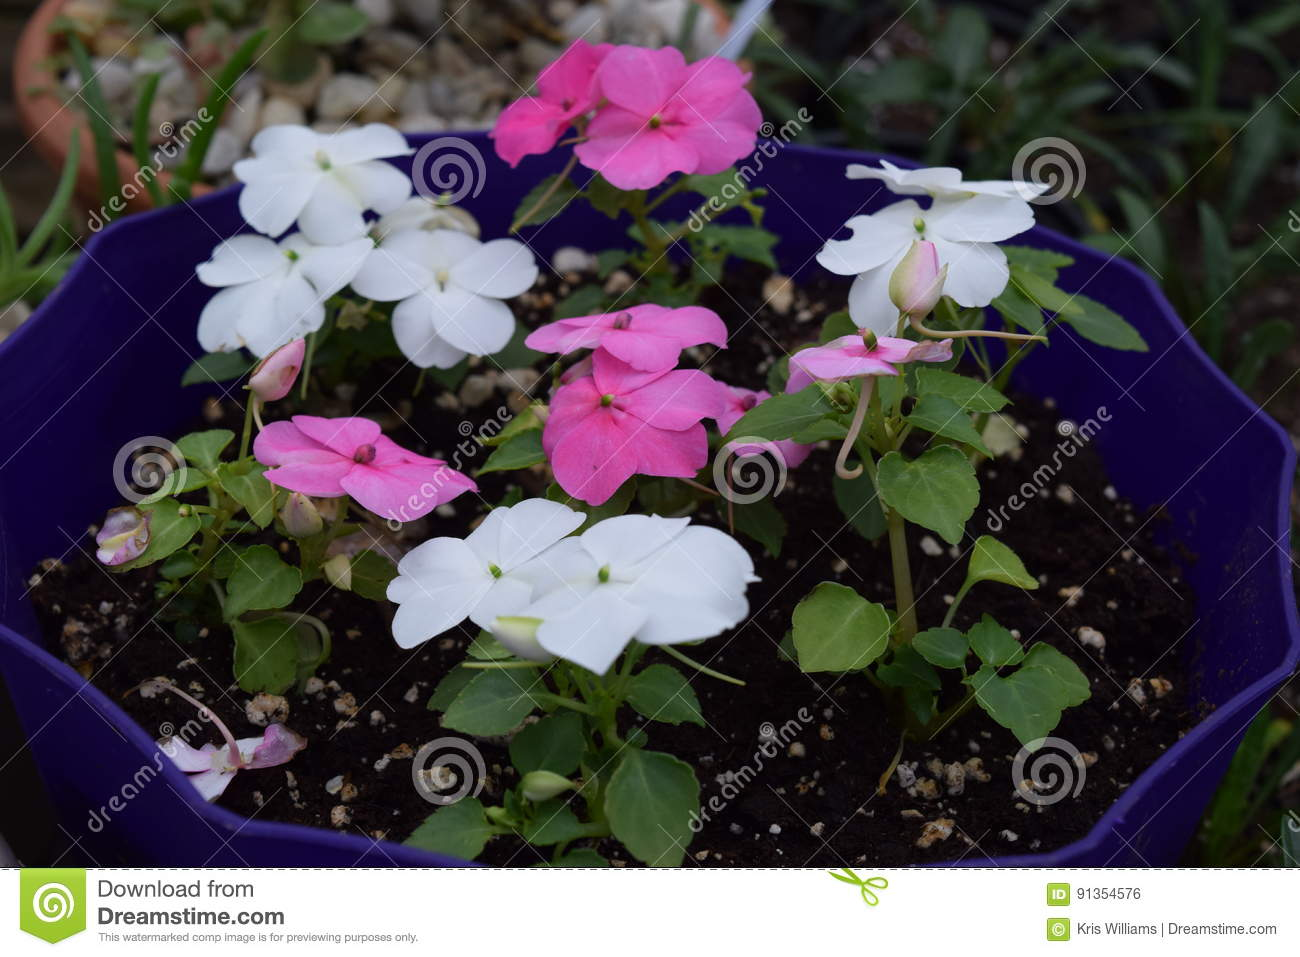 White and pink impatiens